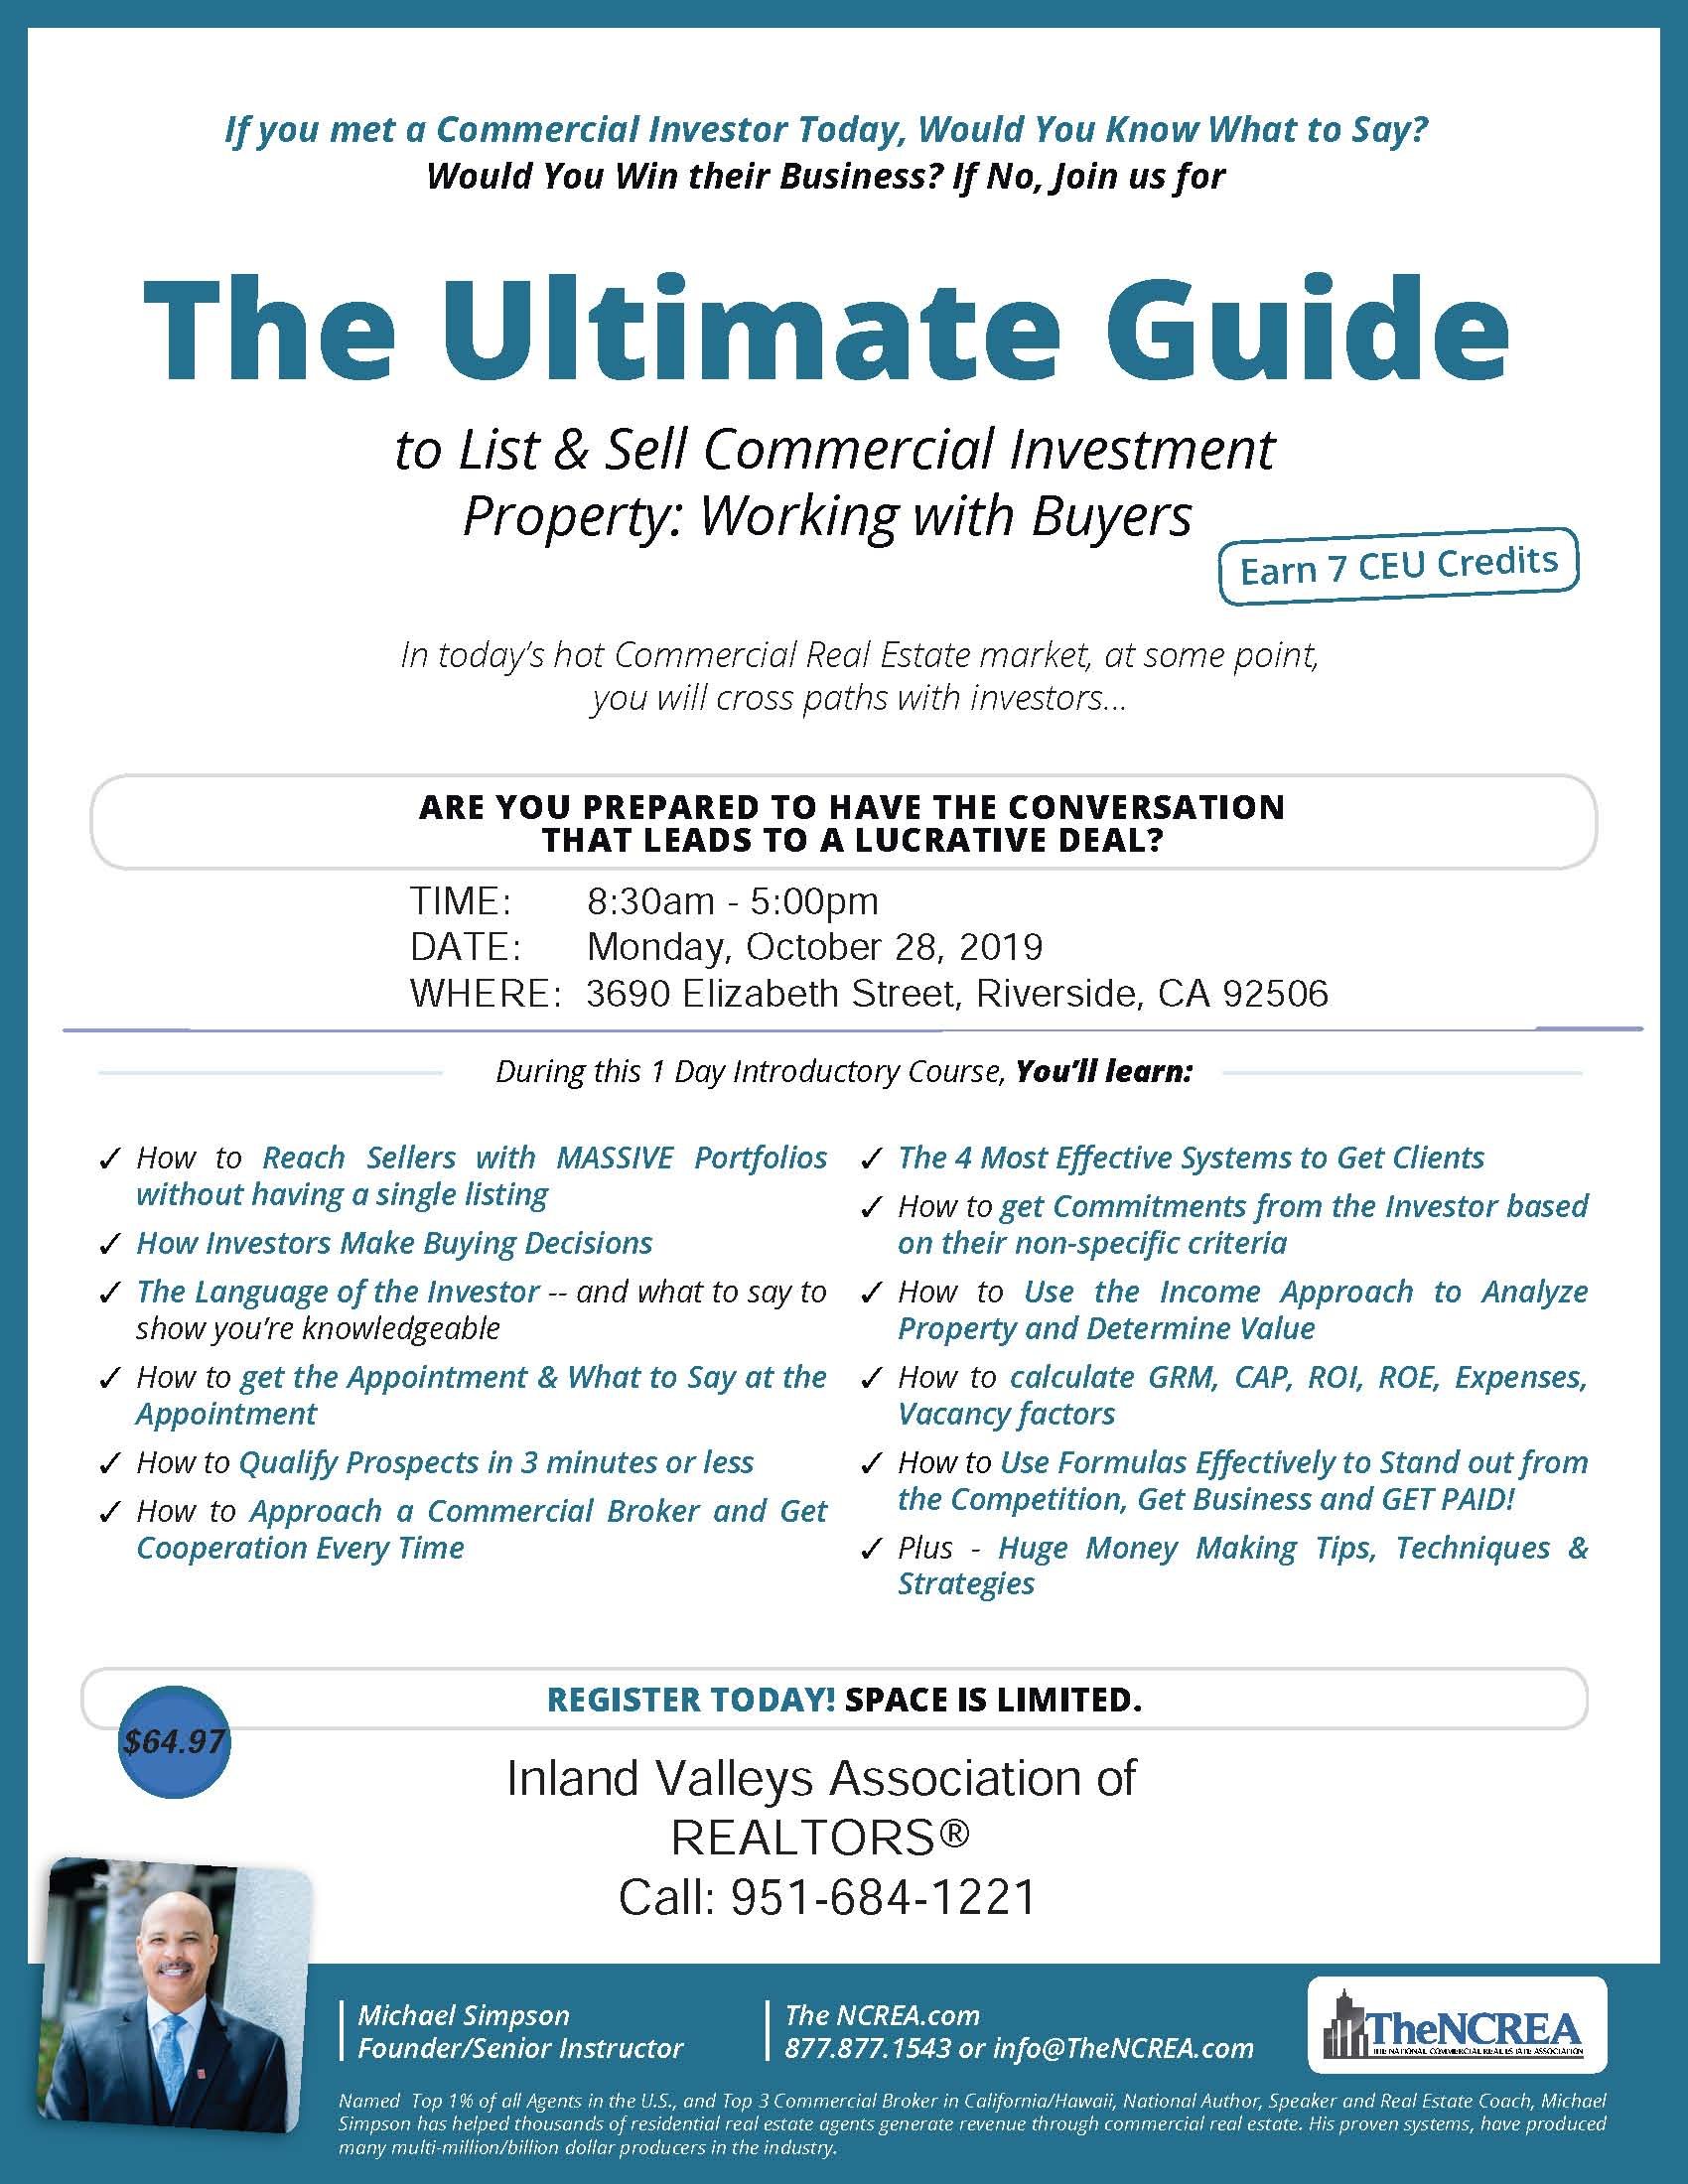 The Ultimate Guide To List & Sell Commercial Investment pertaining to The Ultimate Google Calendar Guide